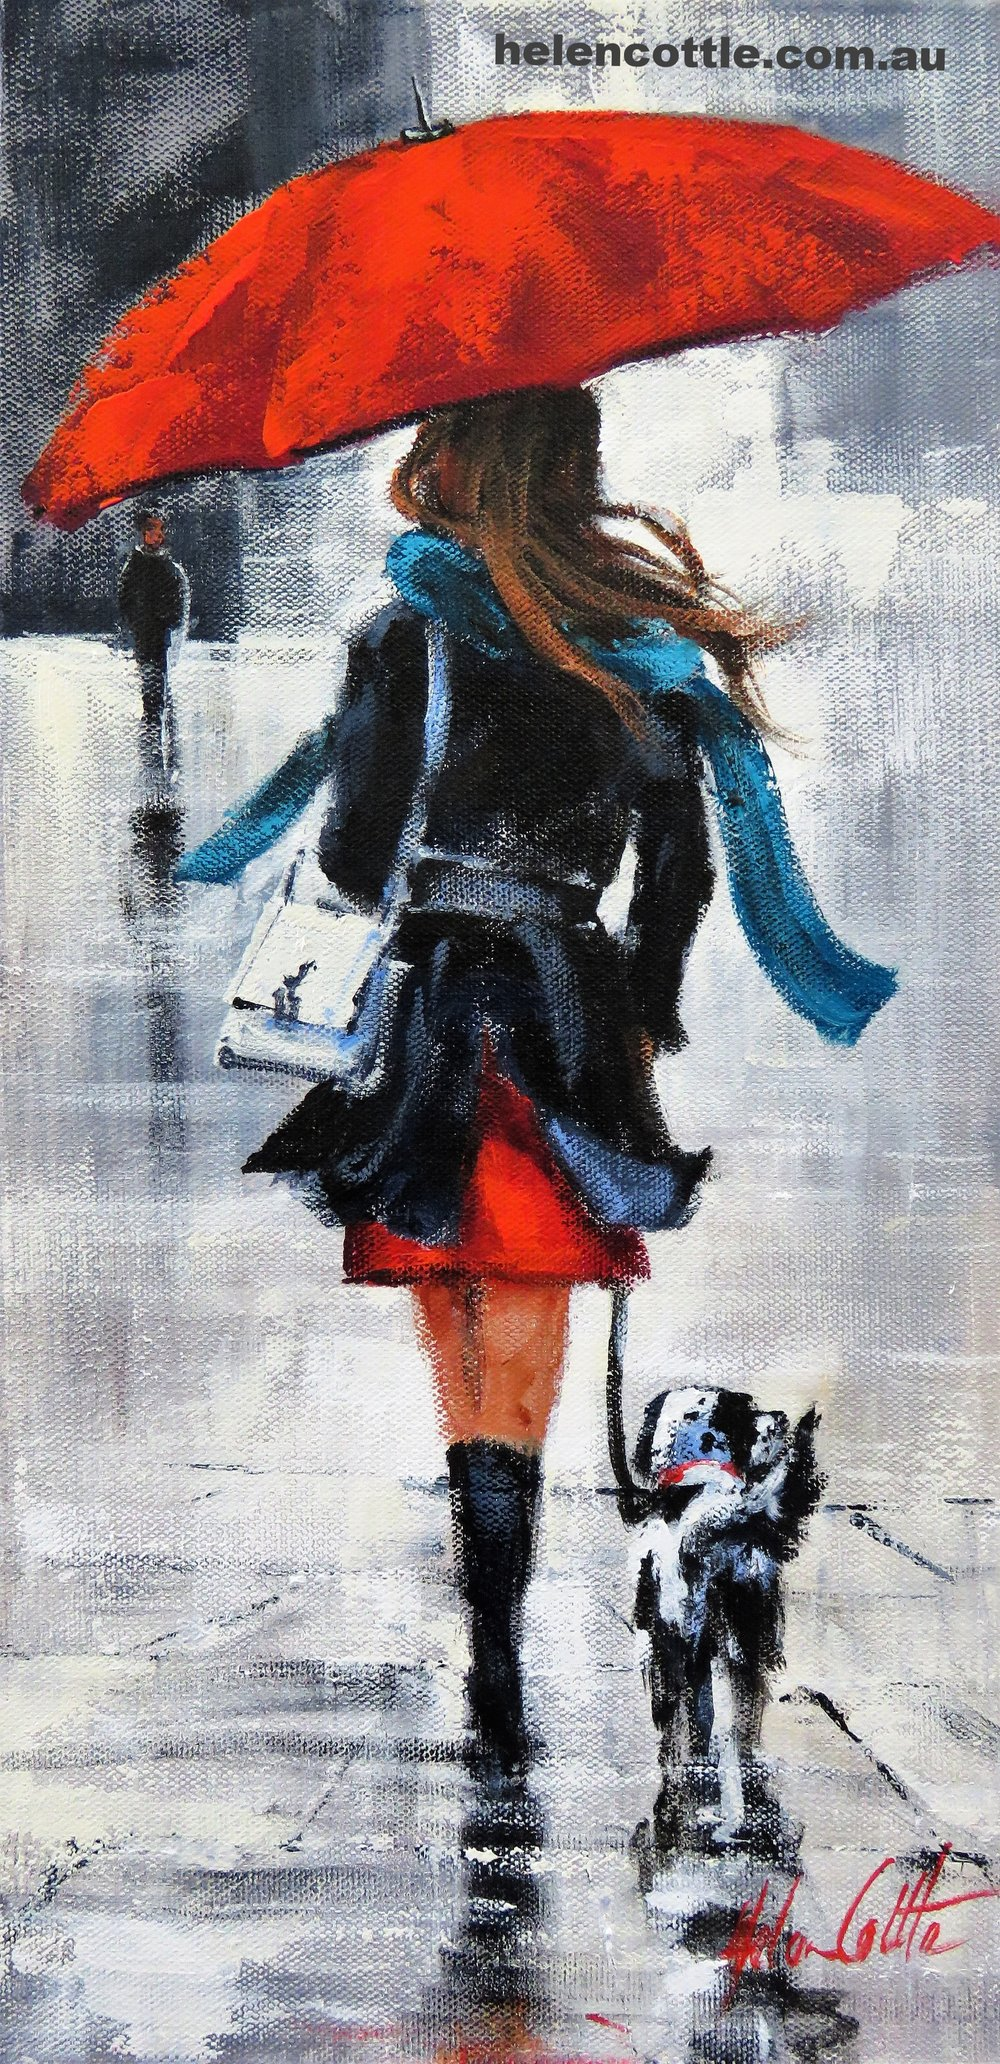 Wednesday Walk Acrylic on canvas 40x20cm By Helen Cottle.JPG